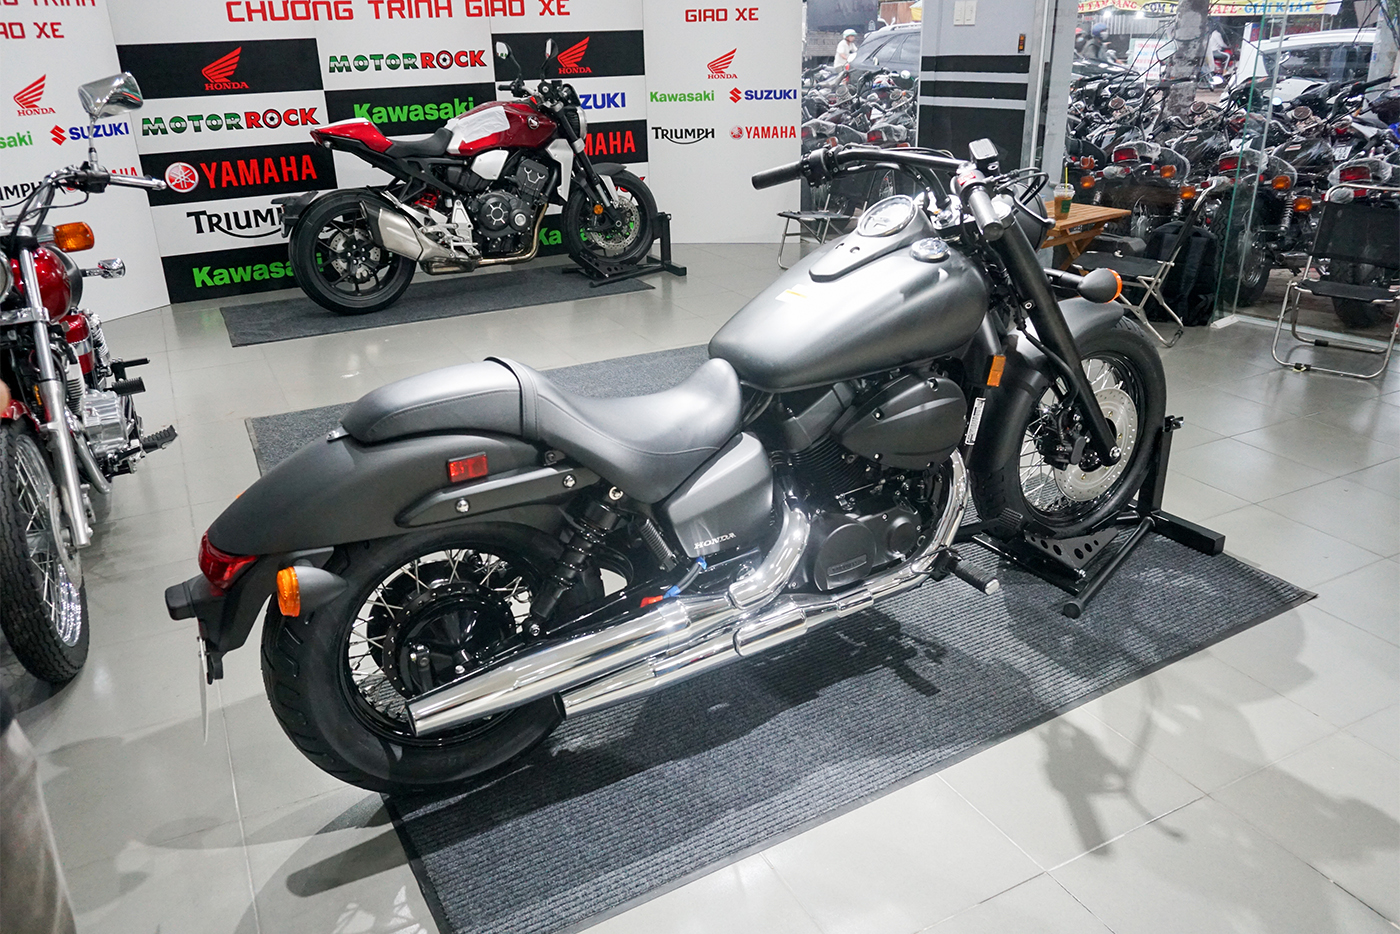 honda-shadow-phantom-750-2018-13.jpg